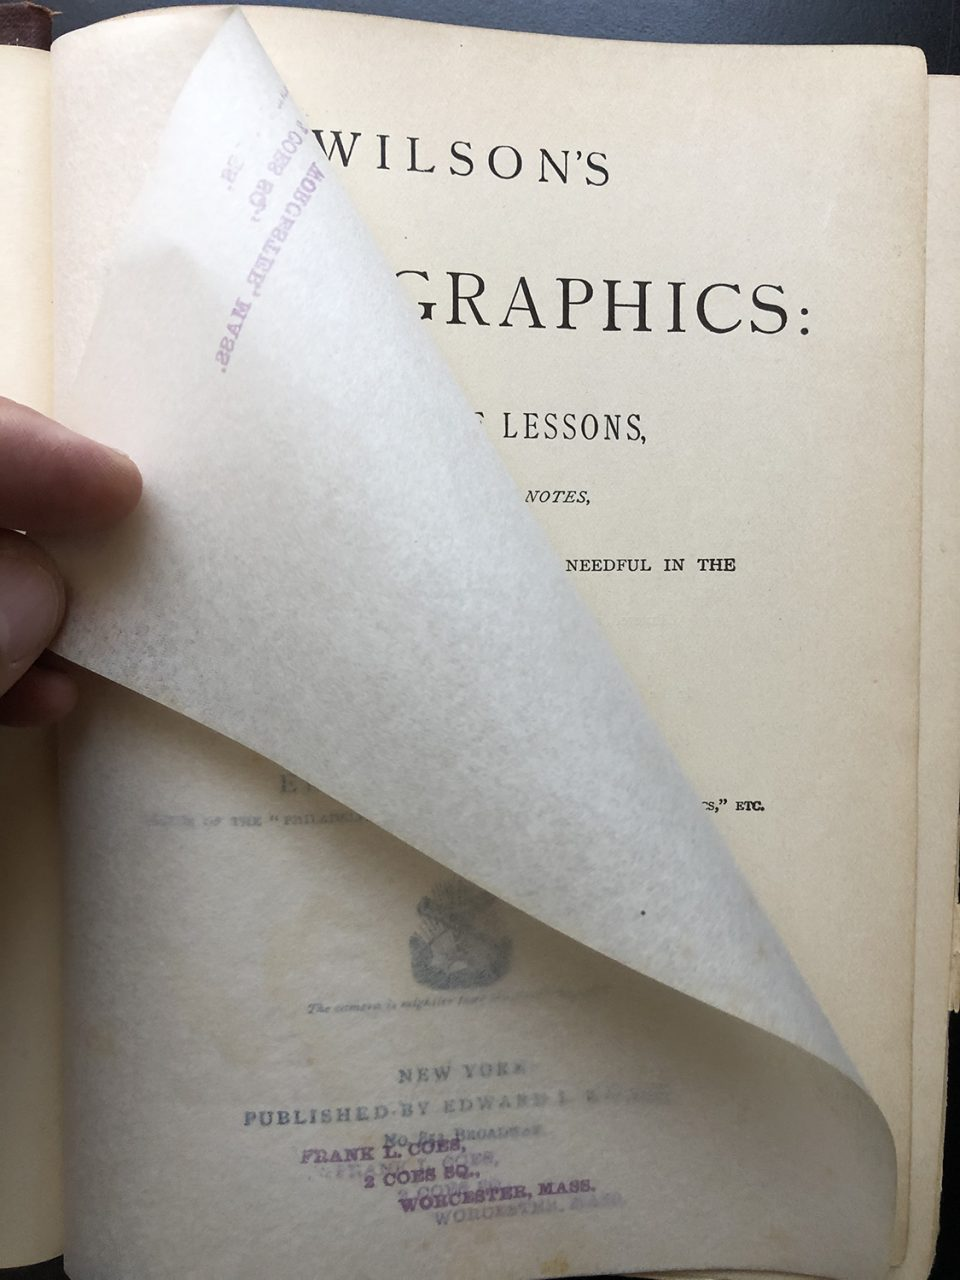 The title page and tissue flysheet from the 1881 publication Wilson's Photographics.